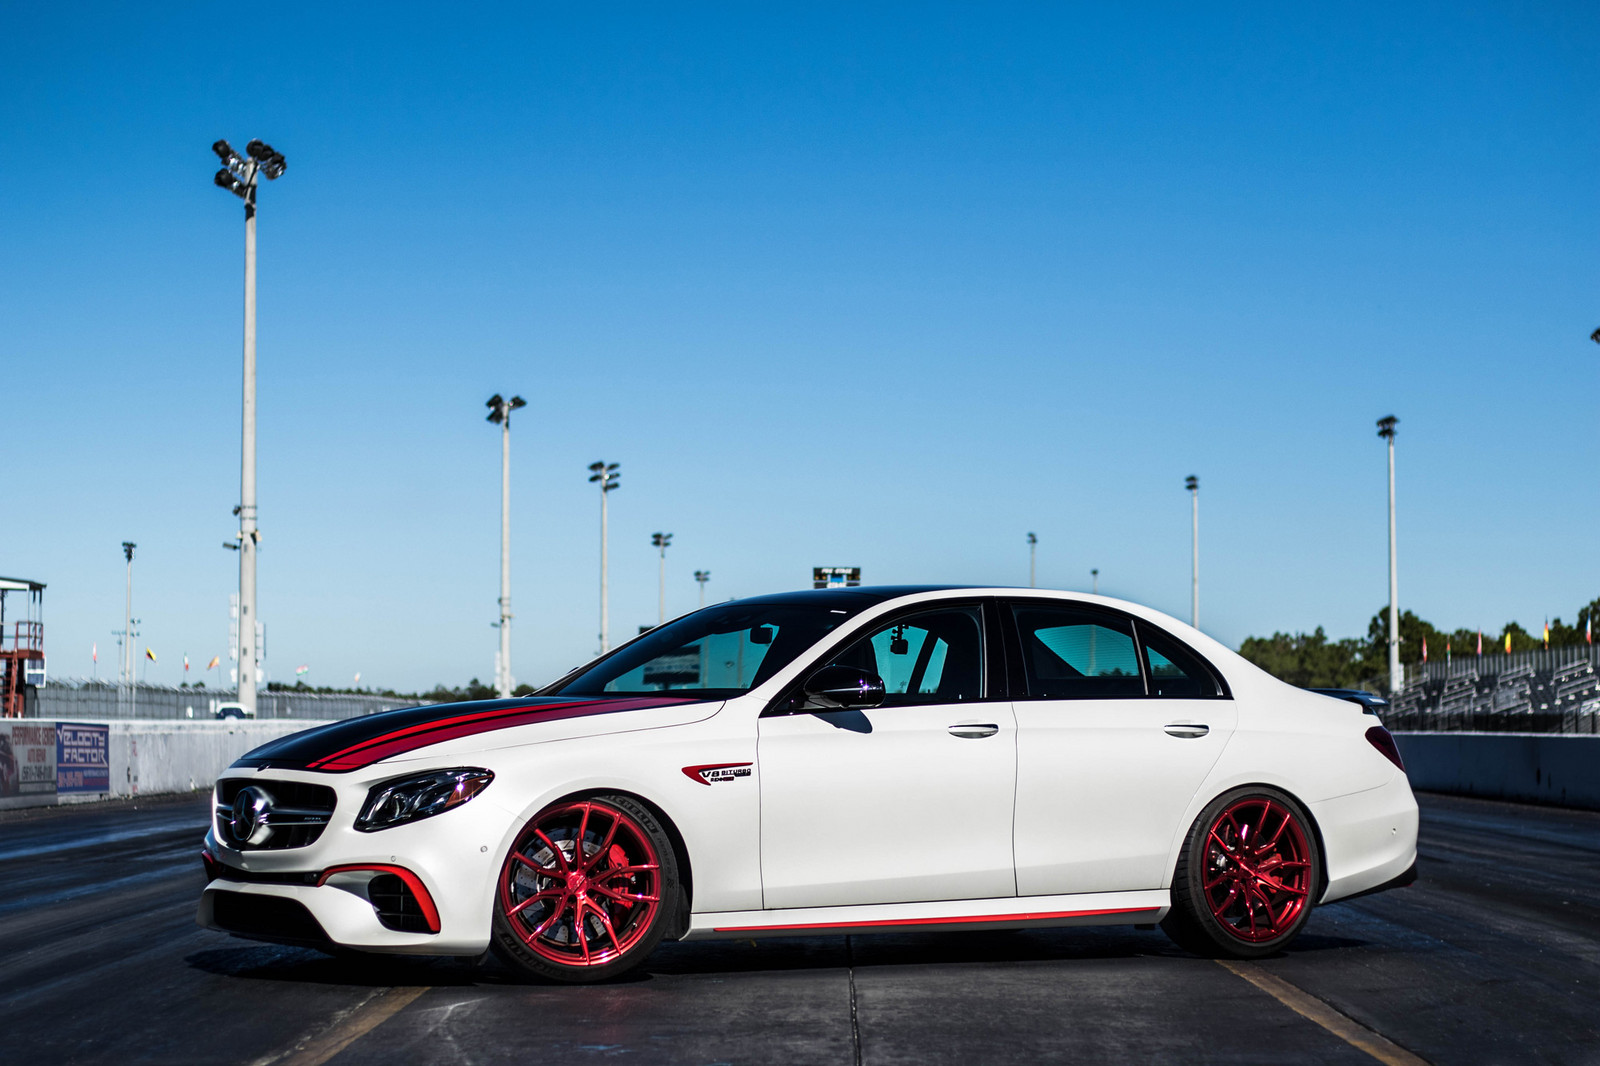 2018 White Mercedes-Benz E63 AMG S 4MATIC+ picture, mods, upgrades